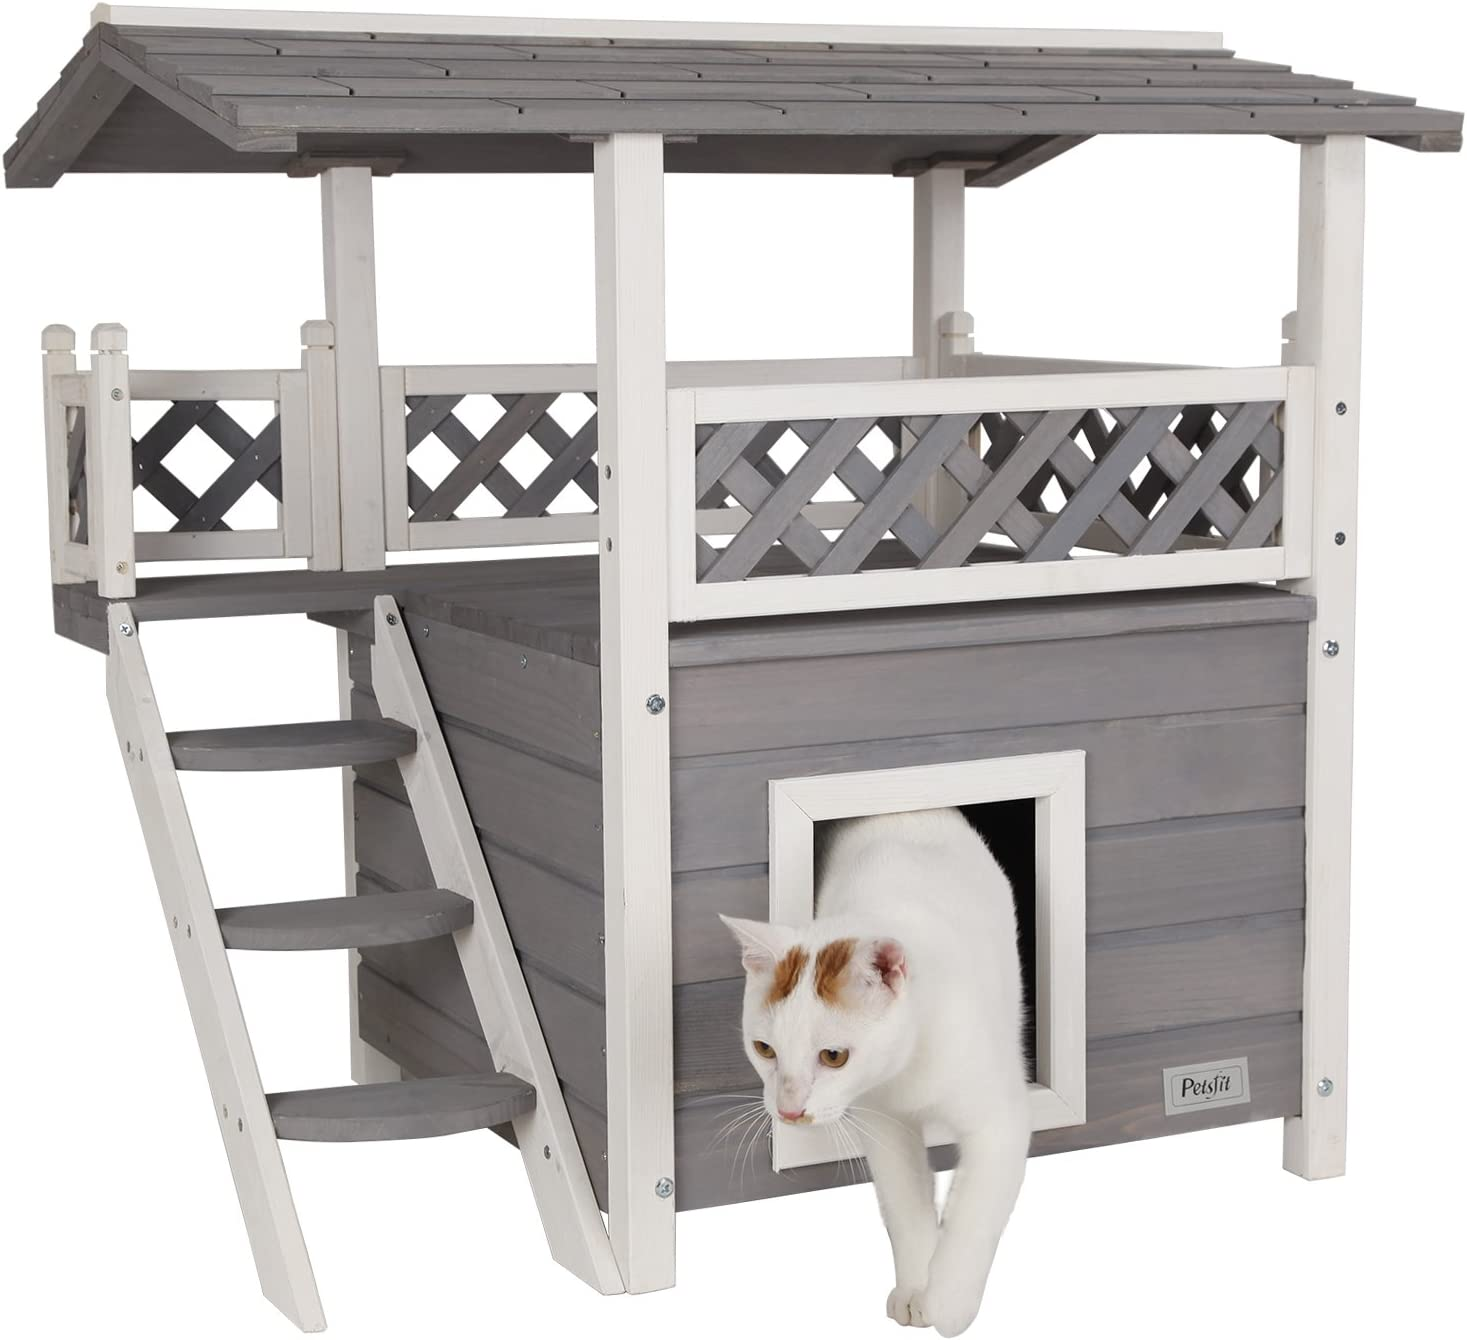 Petsfit Indoor Cat House Cat House With Stairs And Balcony Small Animal Amazon Co Uk Pet Supplies